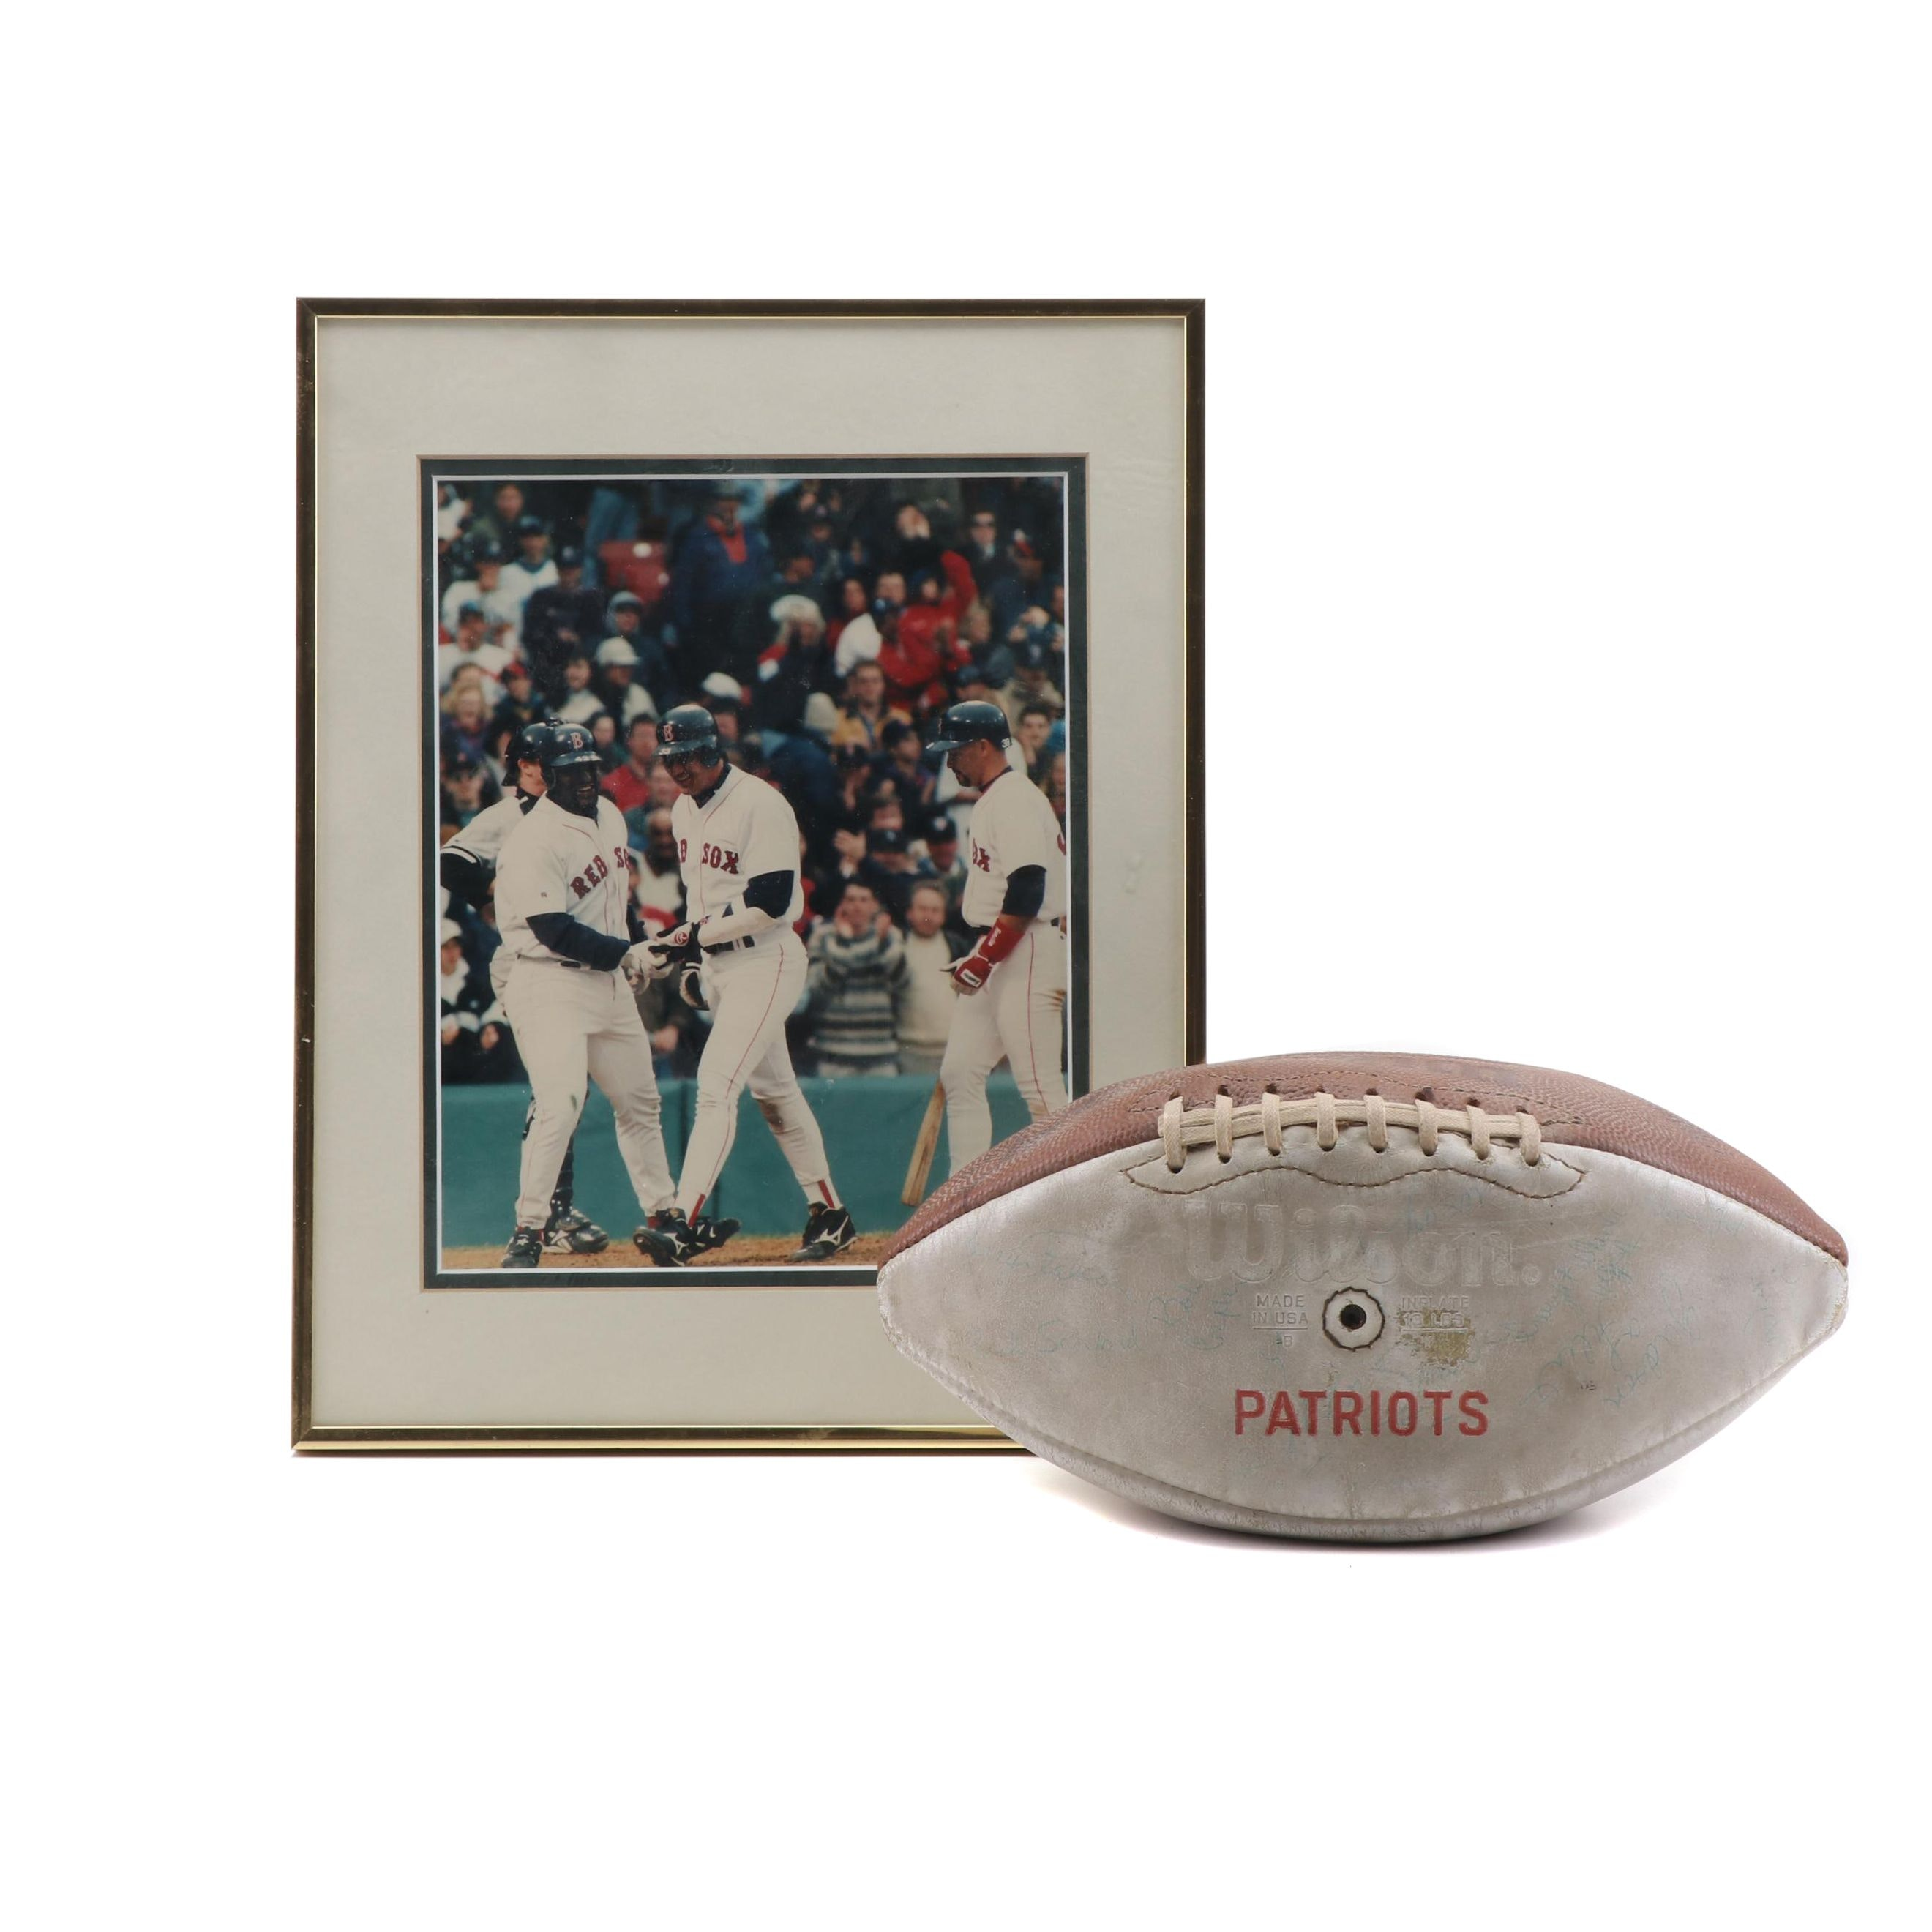 Boston Sport Collectible Including Signed Patriot's Football